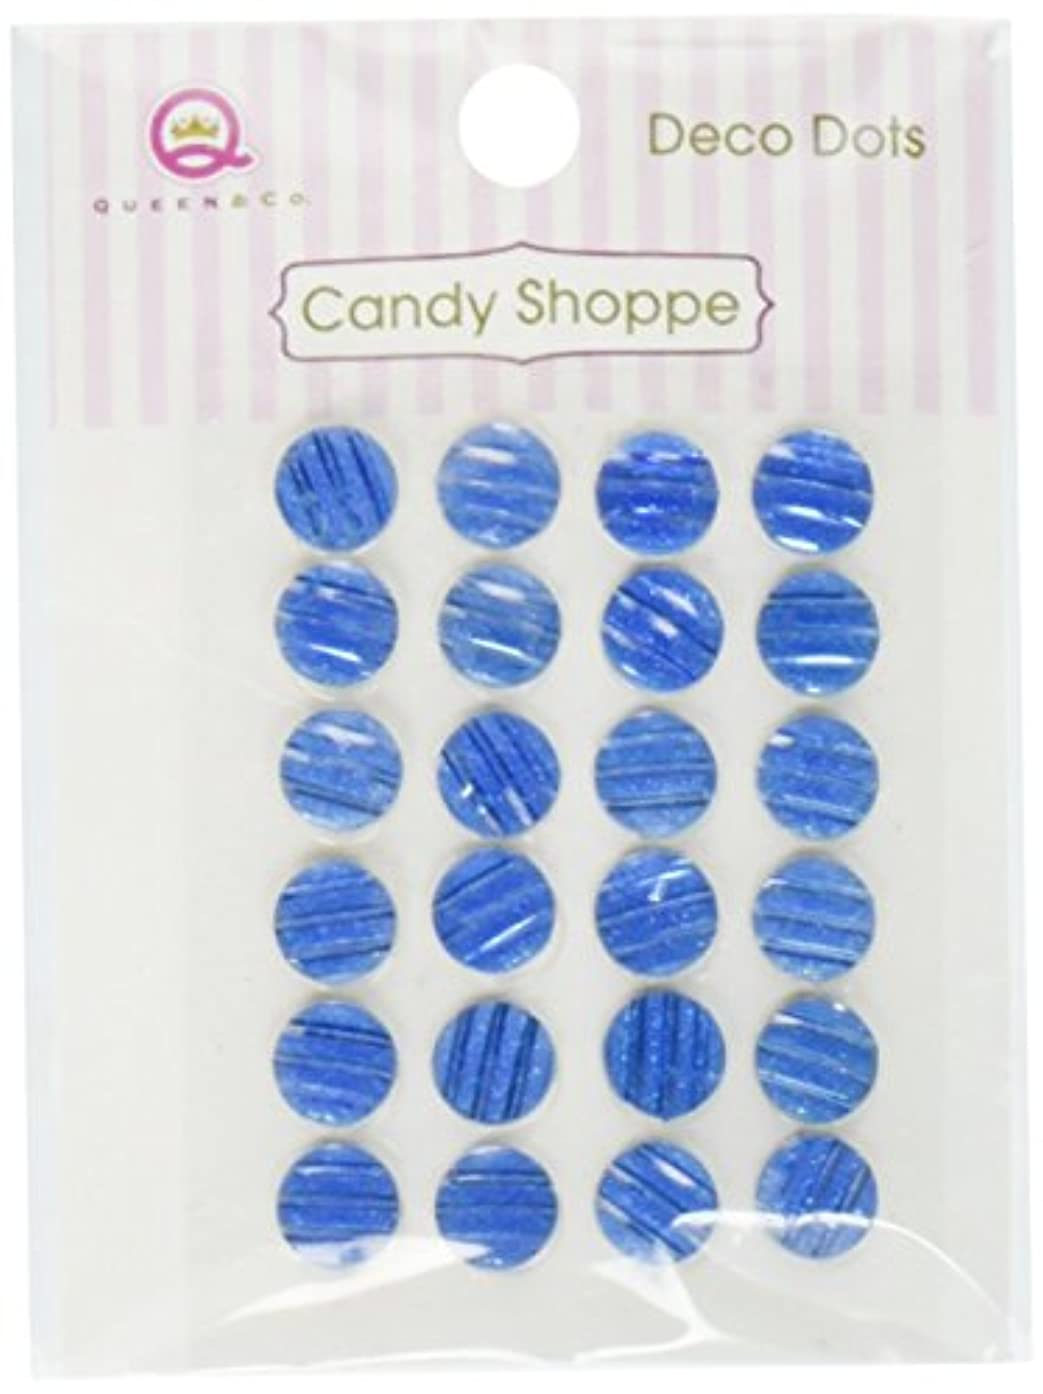 Queen Candy Shoppe Self-Adhesive Deco Dots Embellishments, 8mm, Blue